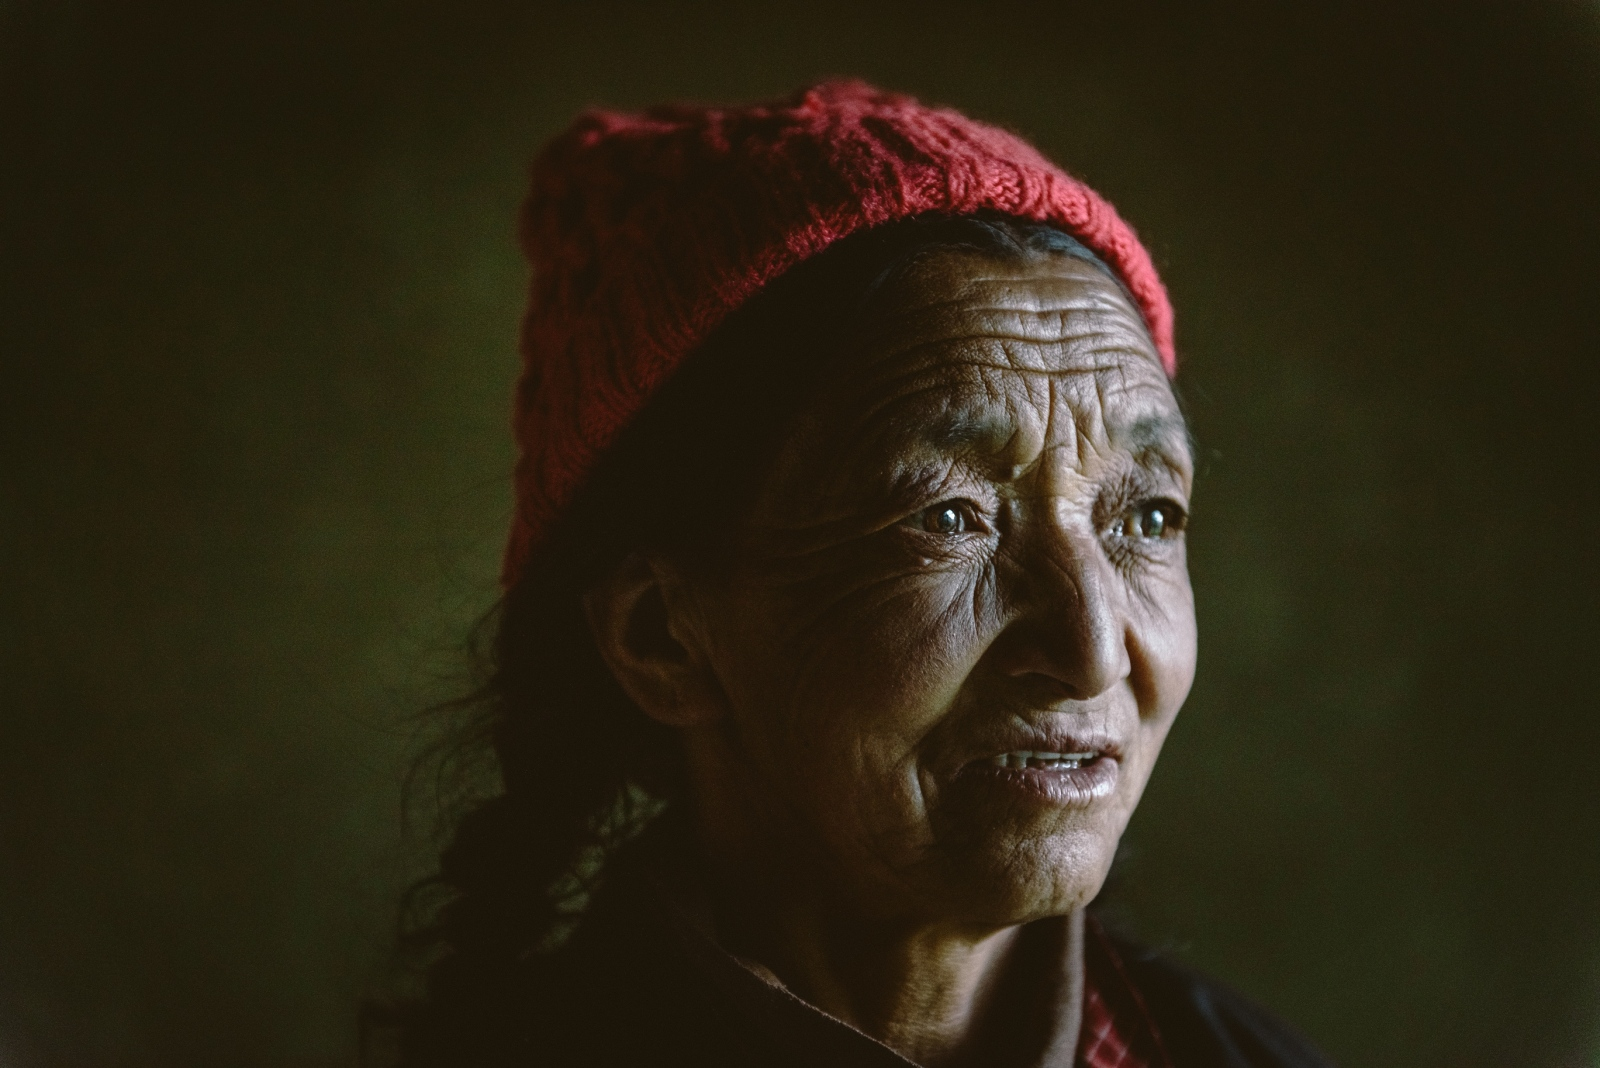 Tsering 'Dolker' Fomsapa, an elder Ladakhi woman of the remote mountain village, Domkhar Gongma, and witness to the 2010 'cloudburst' superstorm events that devastated the region of Ladakh, destroying entire villages and claiming entire families.